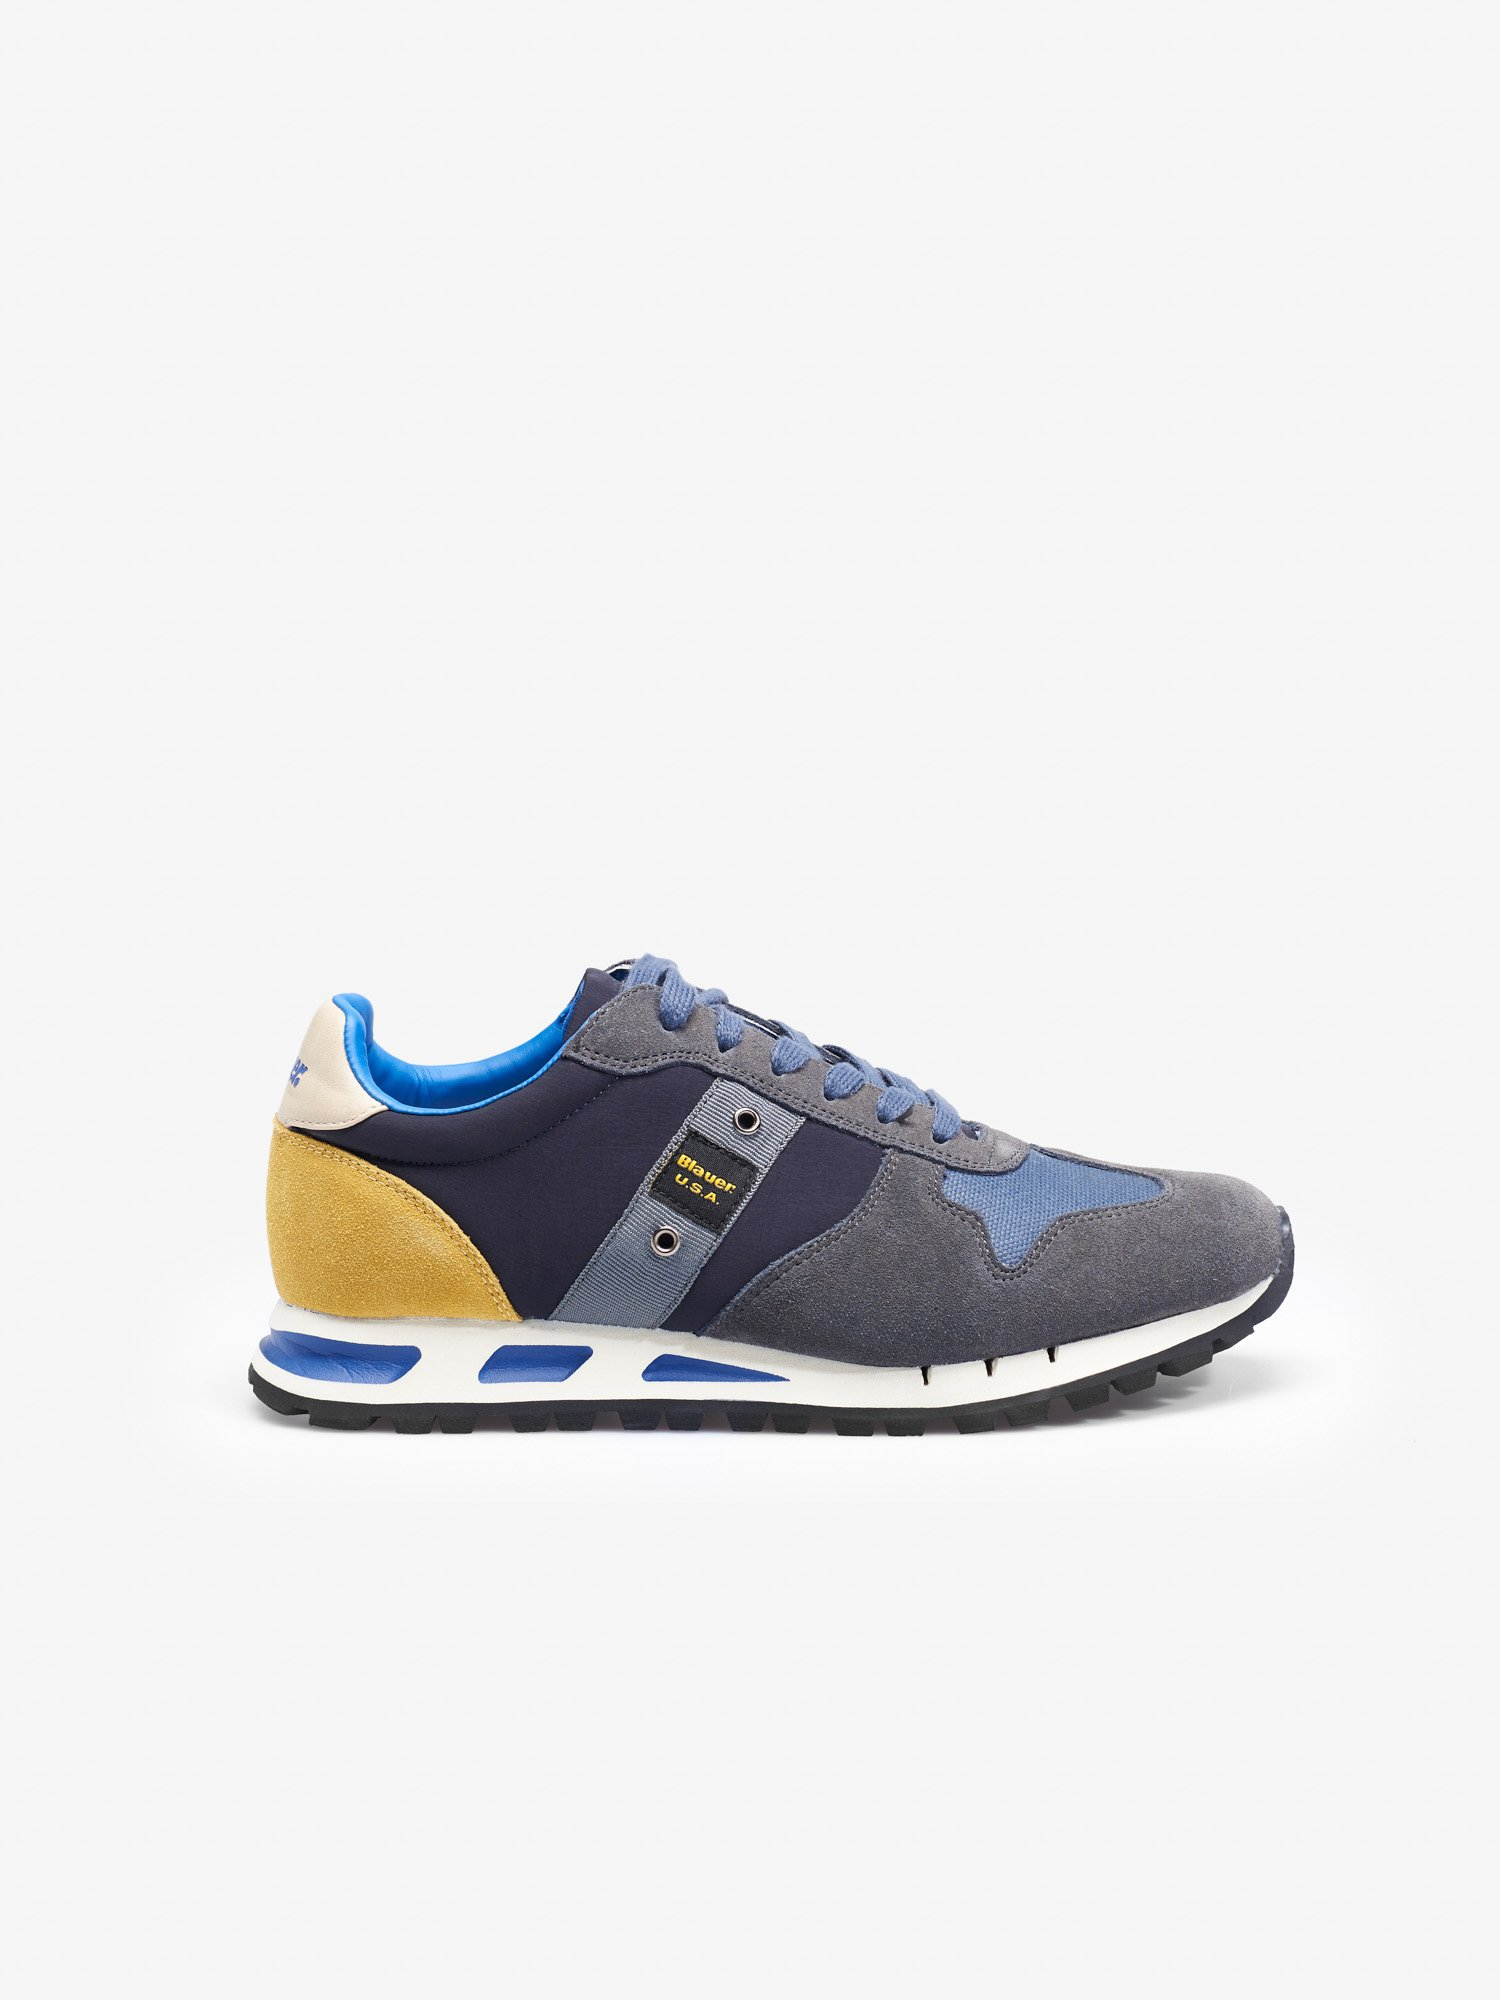 Blauer - MUSTANG SUEDE TRAINERS - blue - Blauer